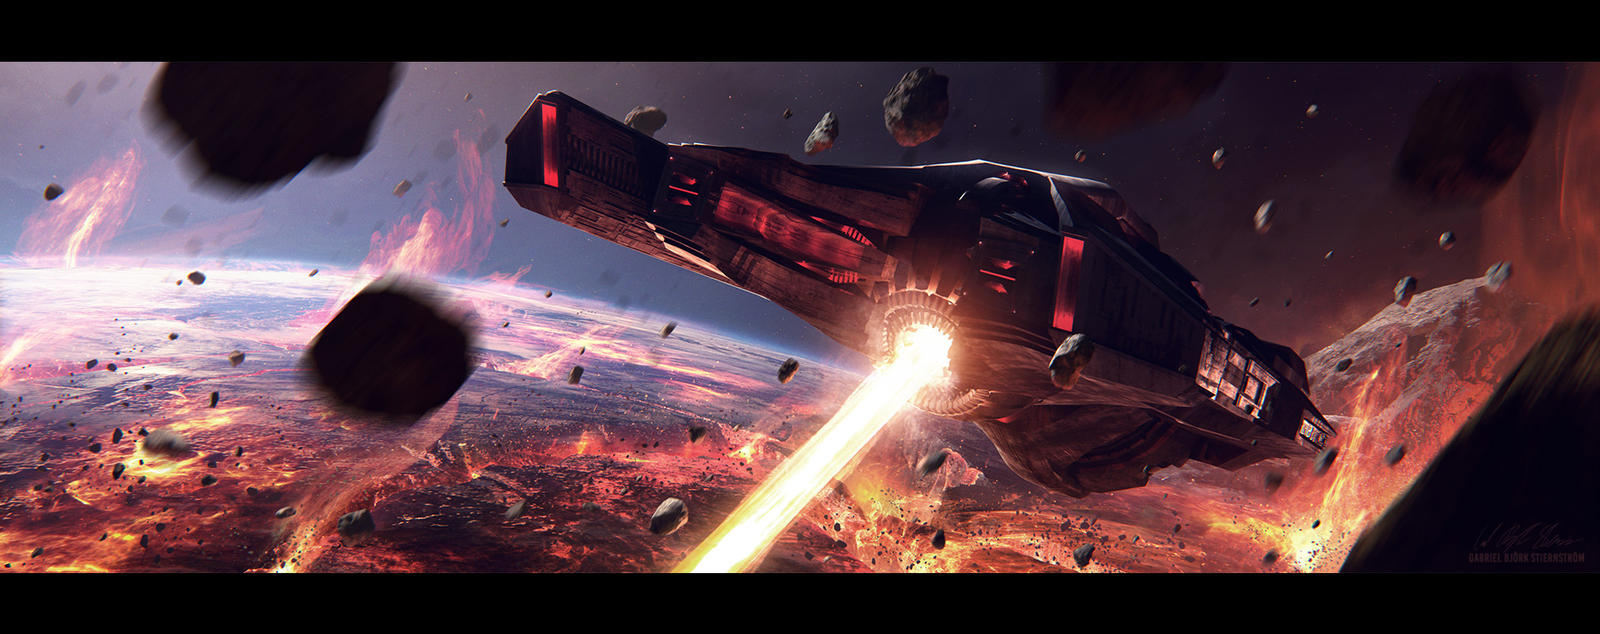 Hades' Star - Cerberus Destroyer by GabrielBStiernstrom